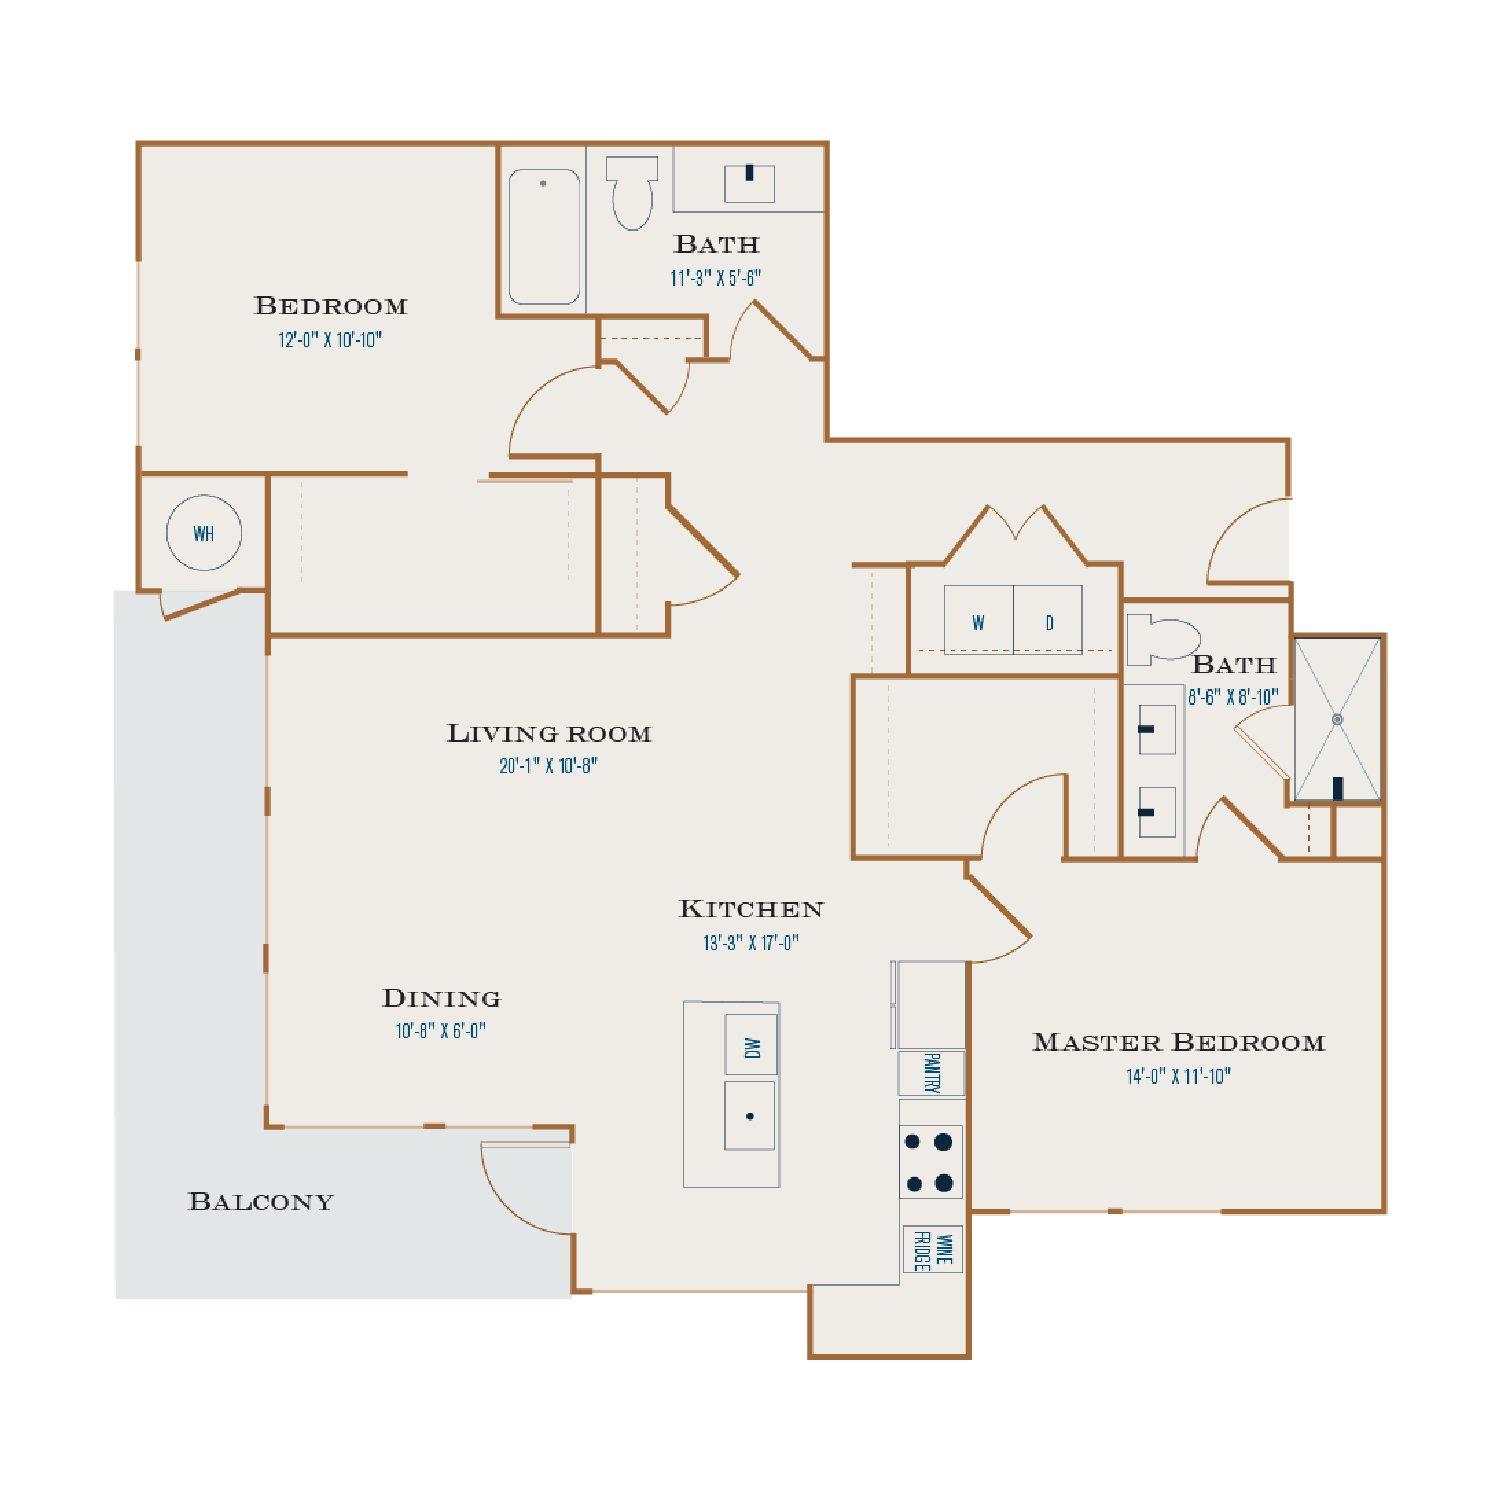 B Three floor plan diagram. Two bedrooms, two bathrooms,  an open kitchen and living area, a balcony, and a washer dryer.